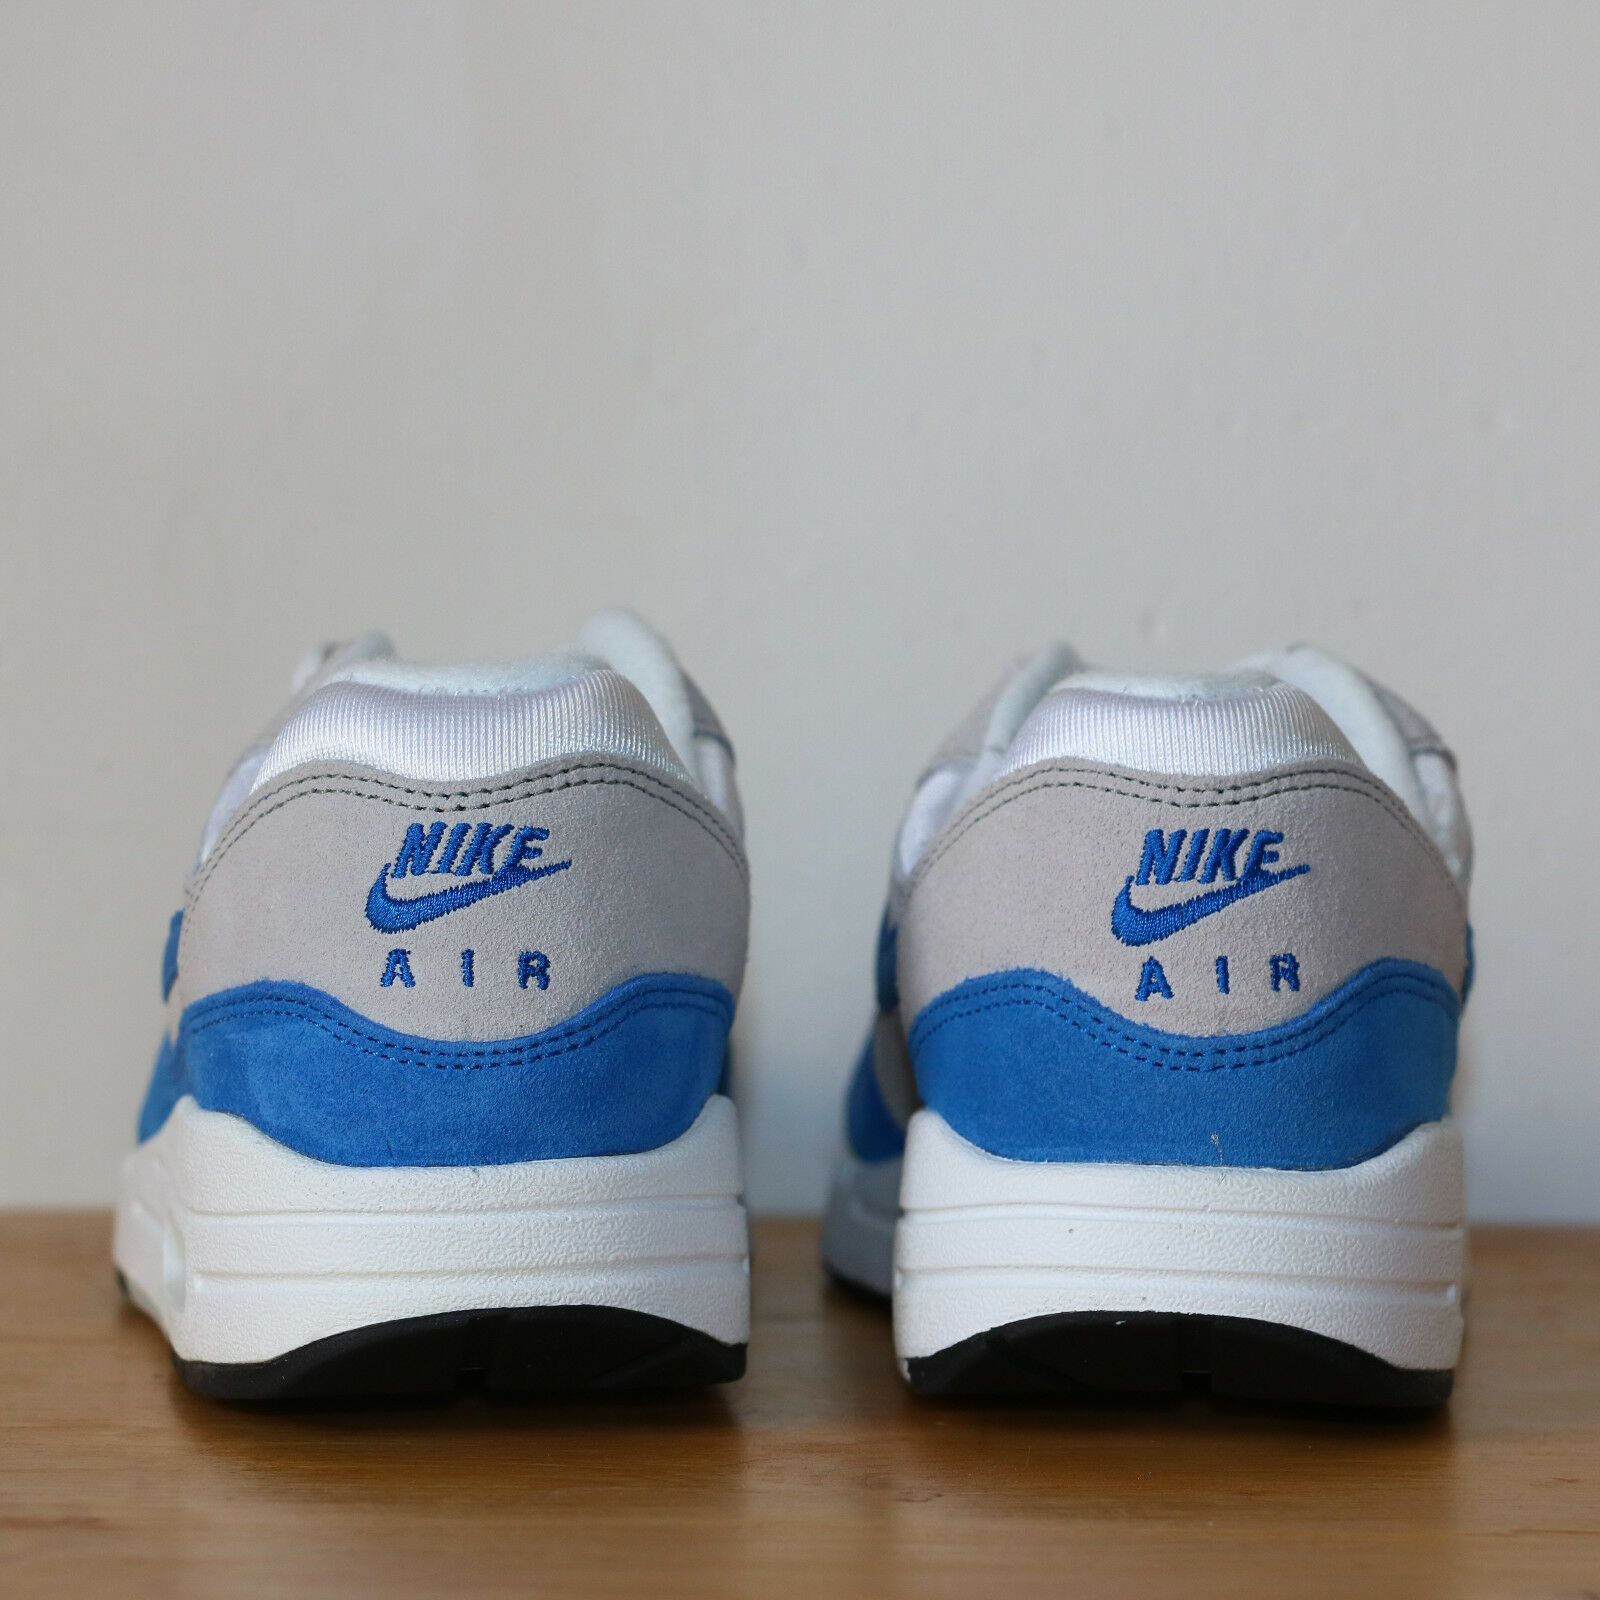 Nike Wmns GS Air Max 1 One GS Wmns 5us - 37.5eu blanc  bleu blanc he Bleue Sneakers DS 5e8bf7